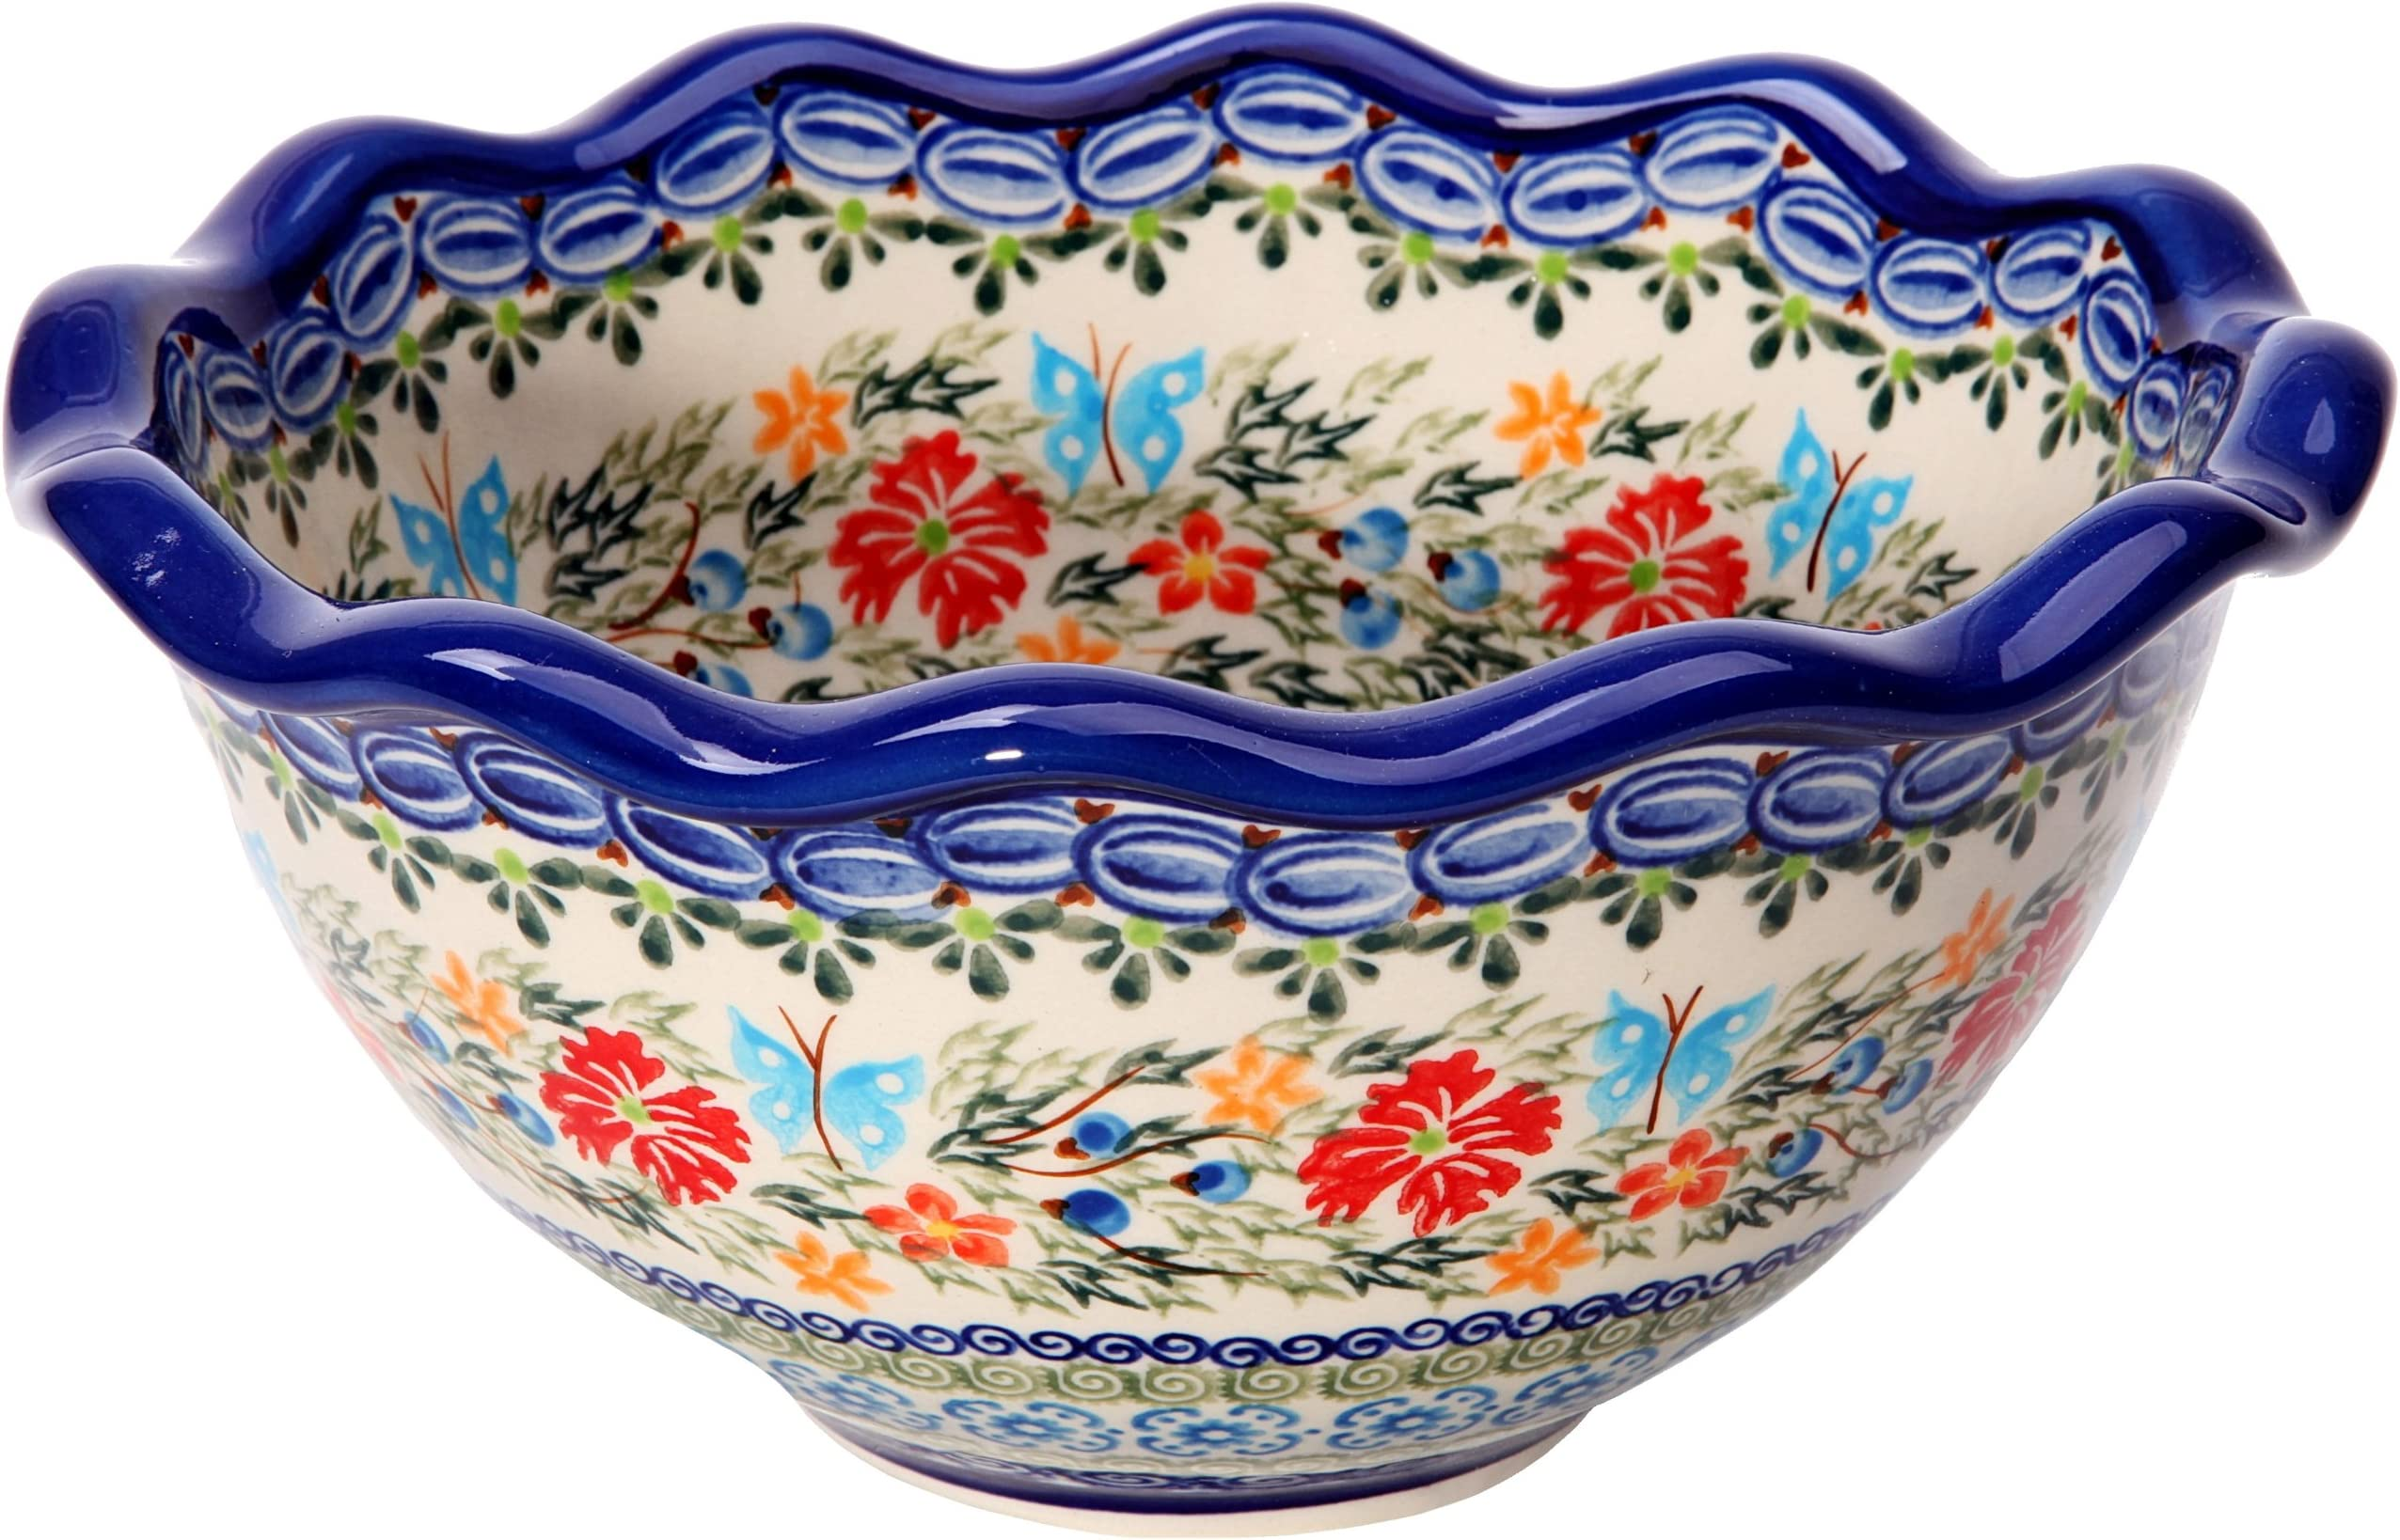 Bluelace collection Handcrafted Ceramic Cereal Or Salad Bowl 360ml Traditional Polish Pottery d. 13cm Boleslawiec Style Pattern